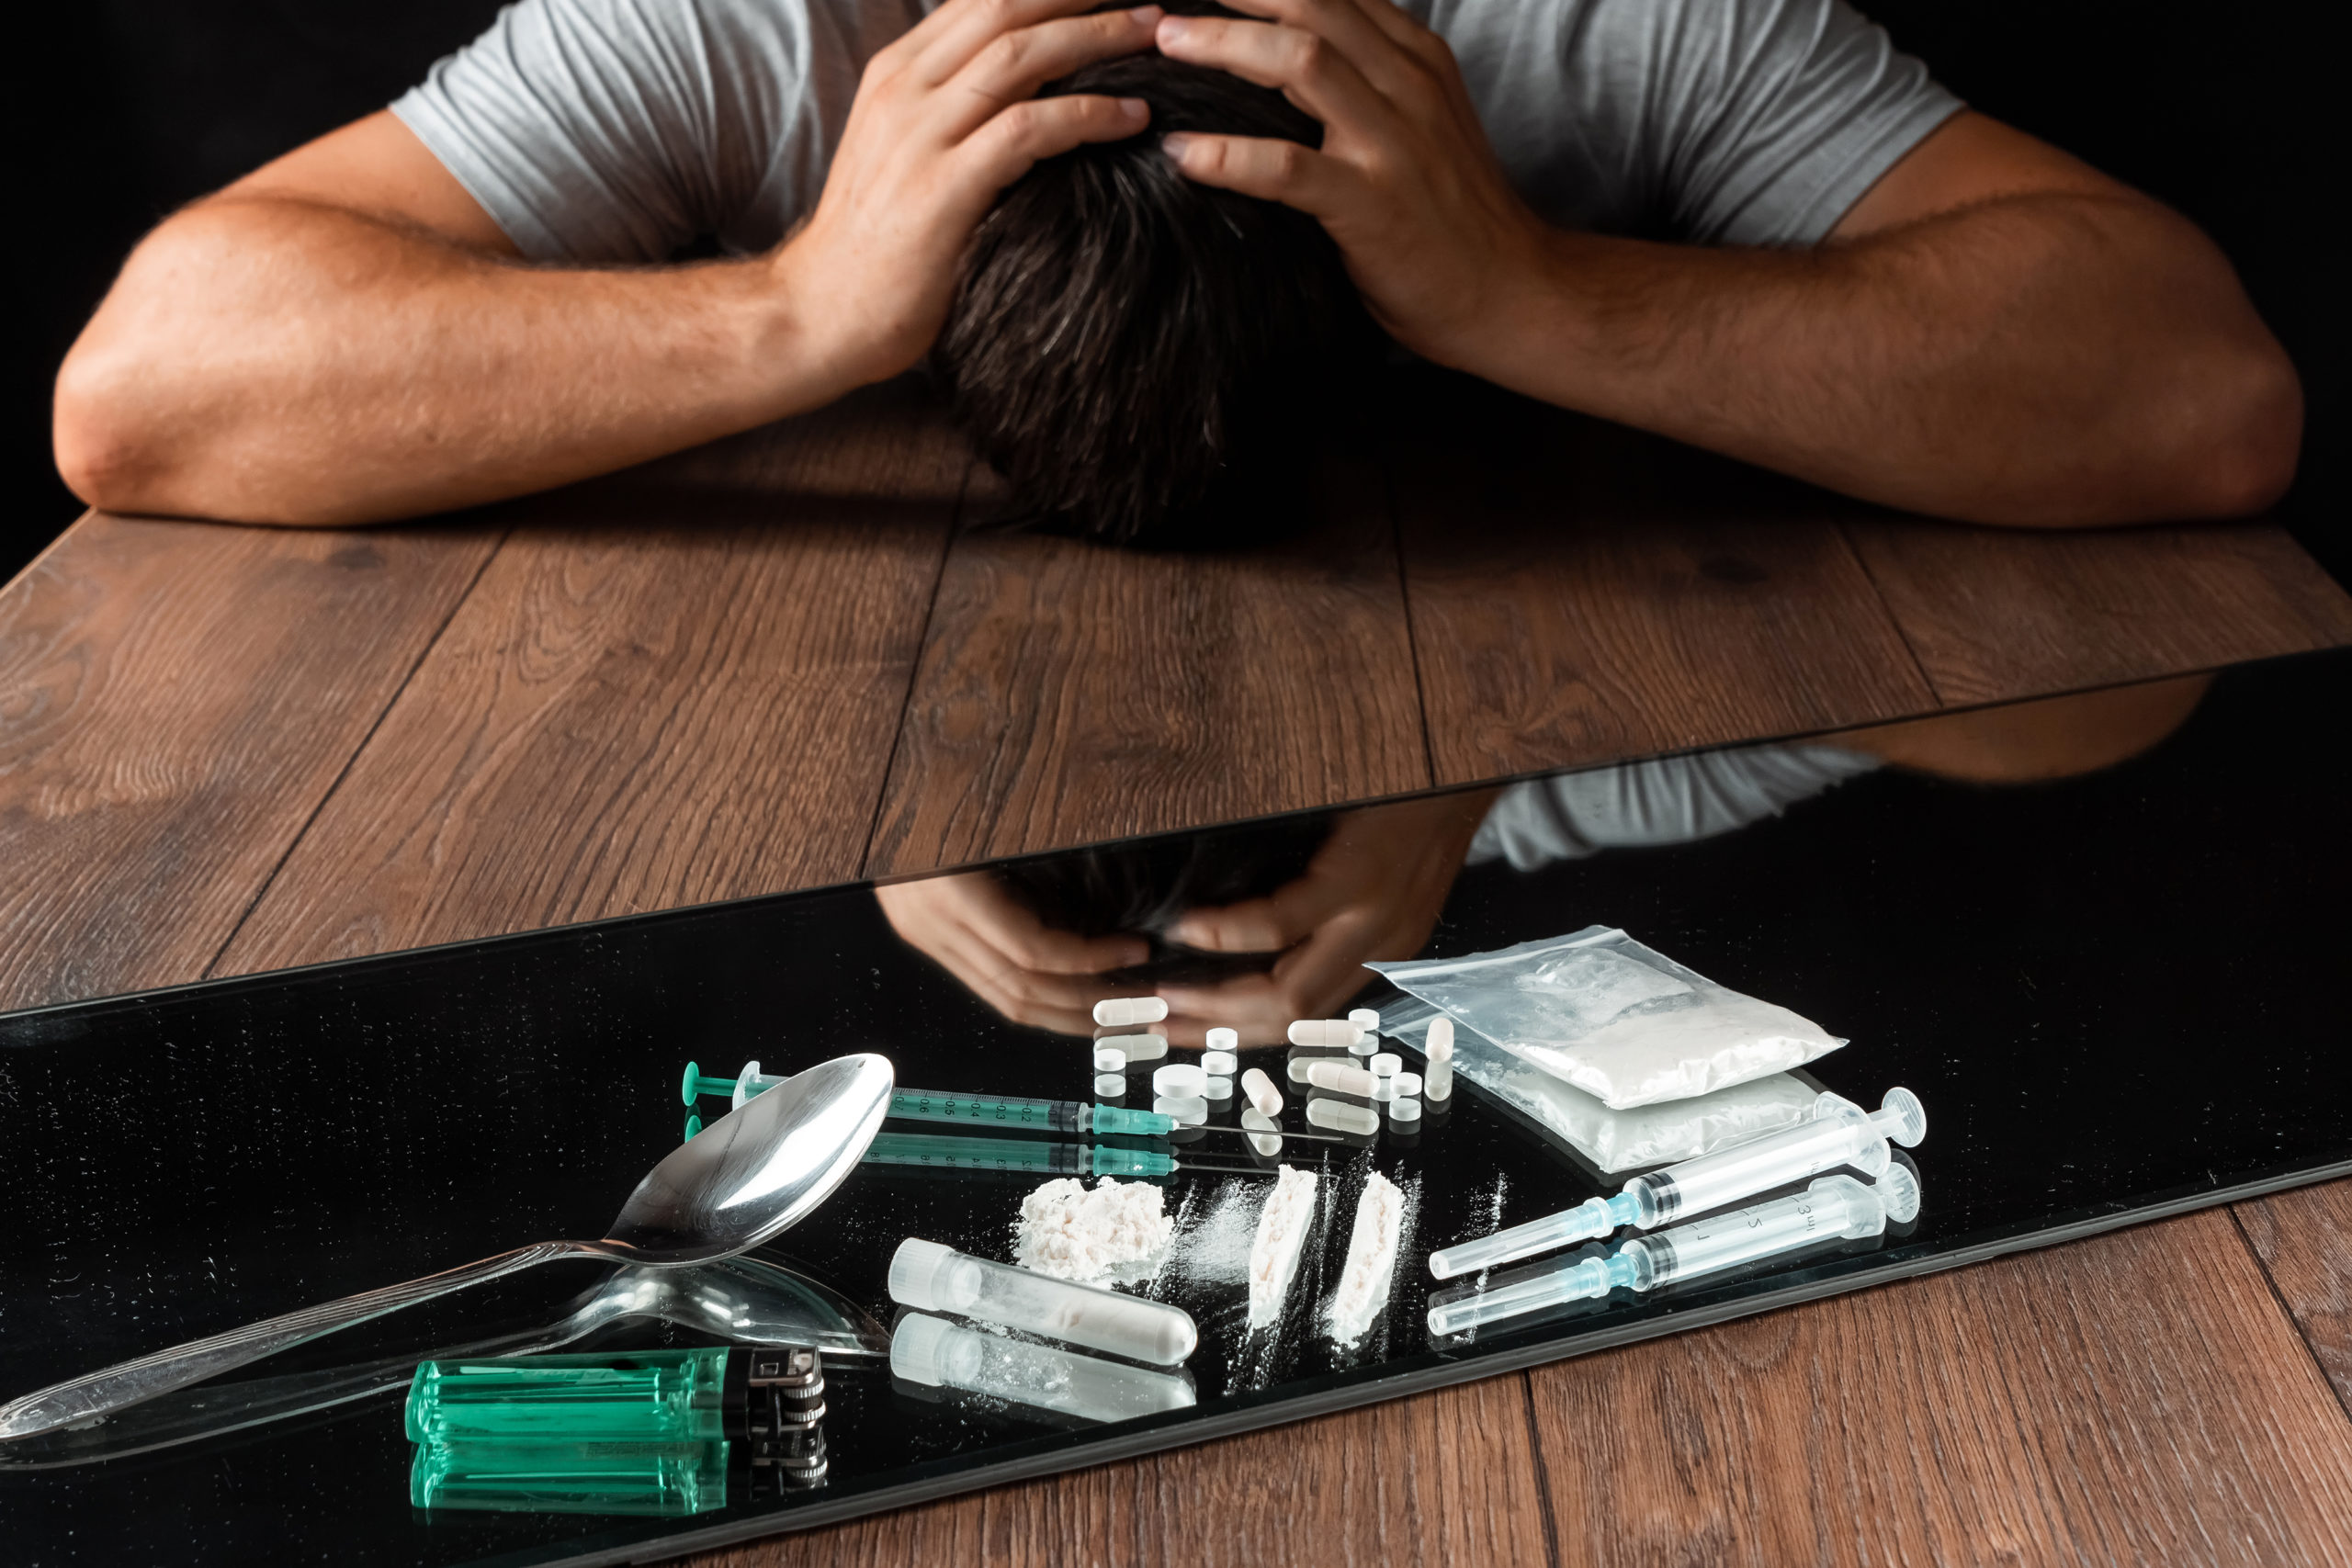 Free Course International Overdose Awareness Day Think Tank Academy